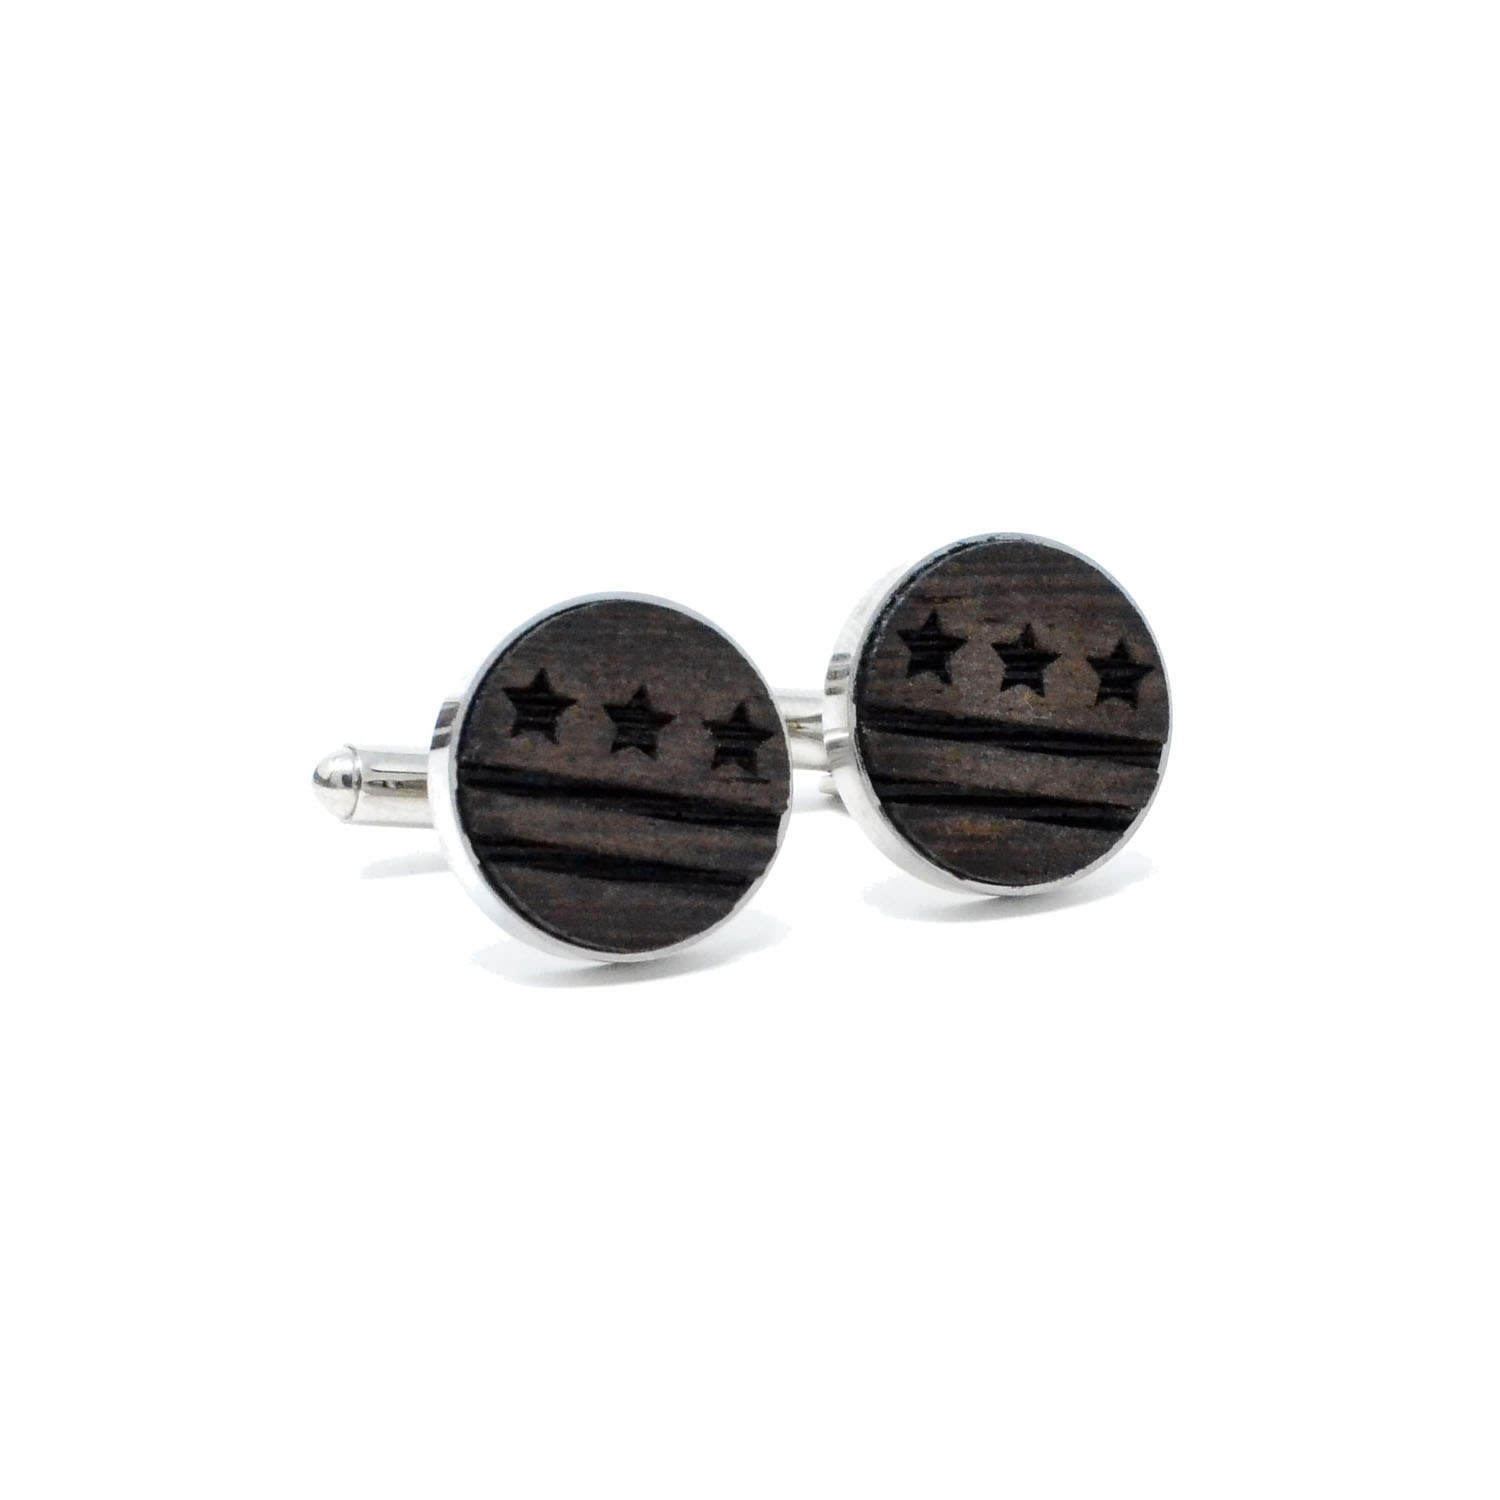 Switchwood  - Cufflinks - Unique and distinct wooden cufflinks to top off your polished look.